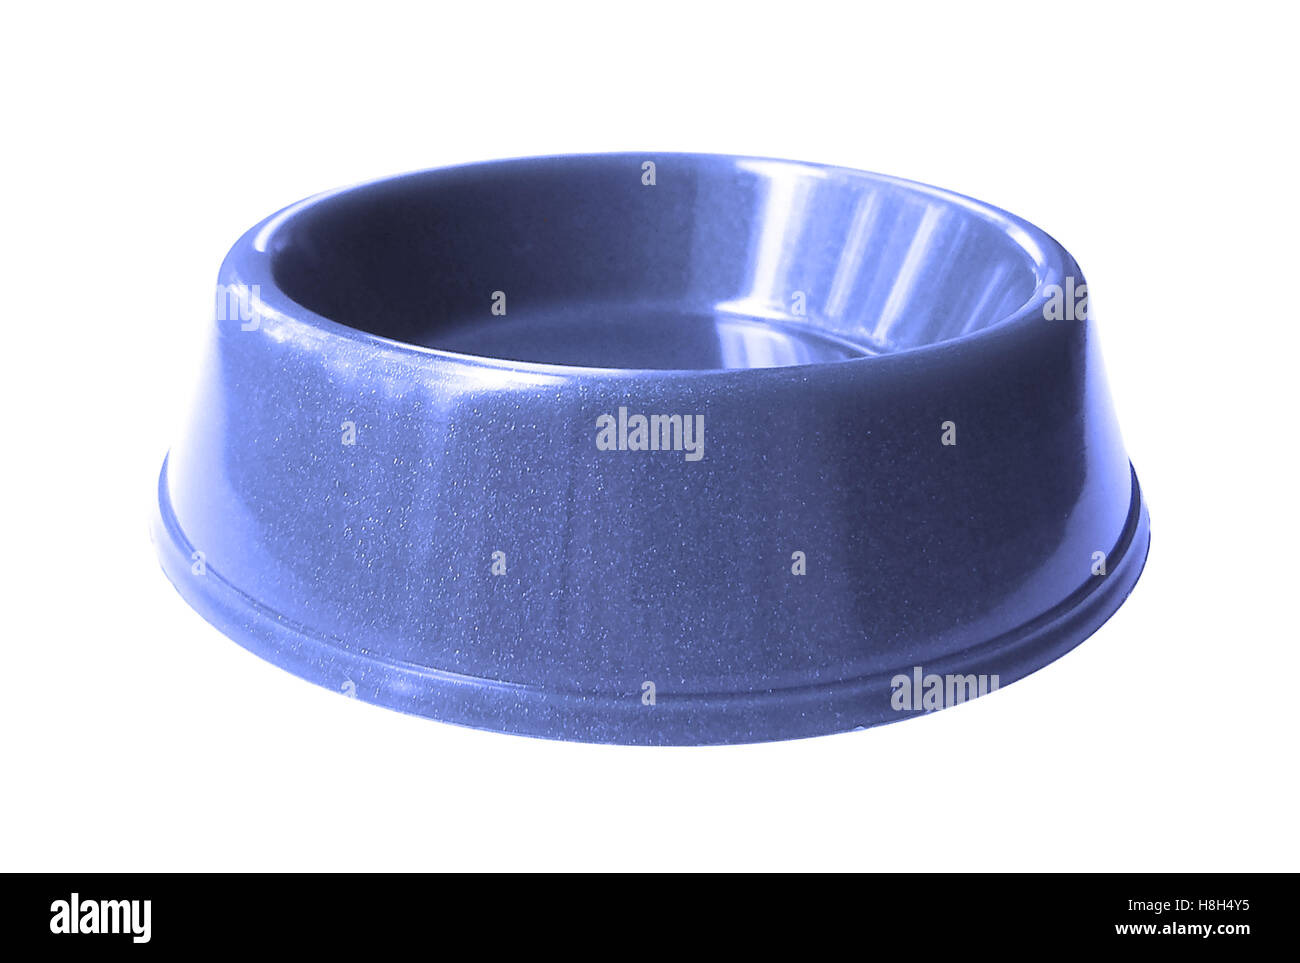 Bowl for pets - Stock Image